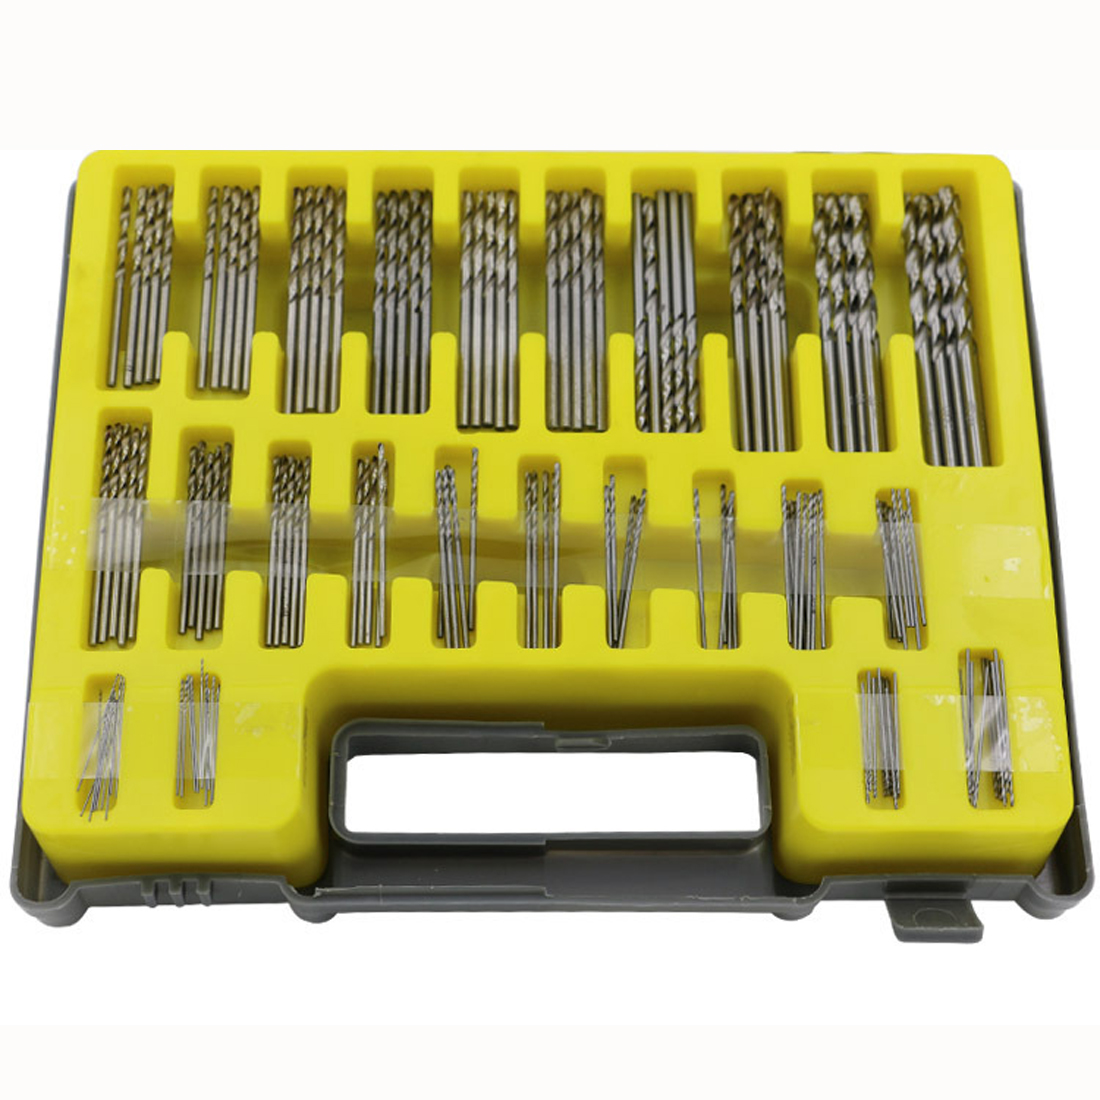 150PCS 0.4-3.2mm Drill Bit Set Small Precision With Carry Case Plastic Box Mini HSS Hand Tools Twist Drill Kit Set